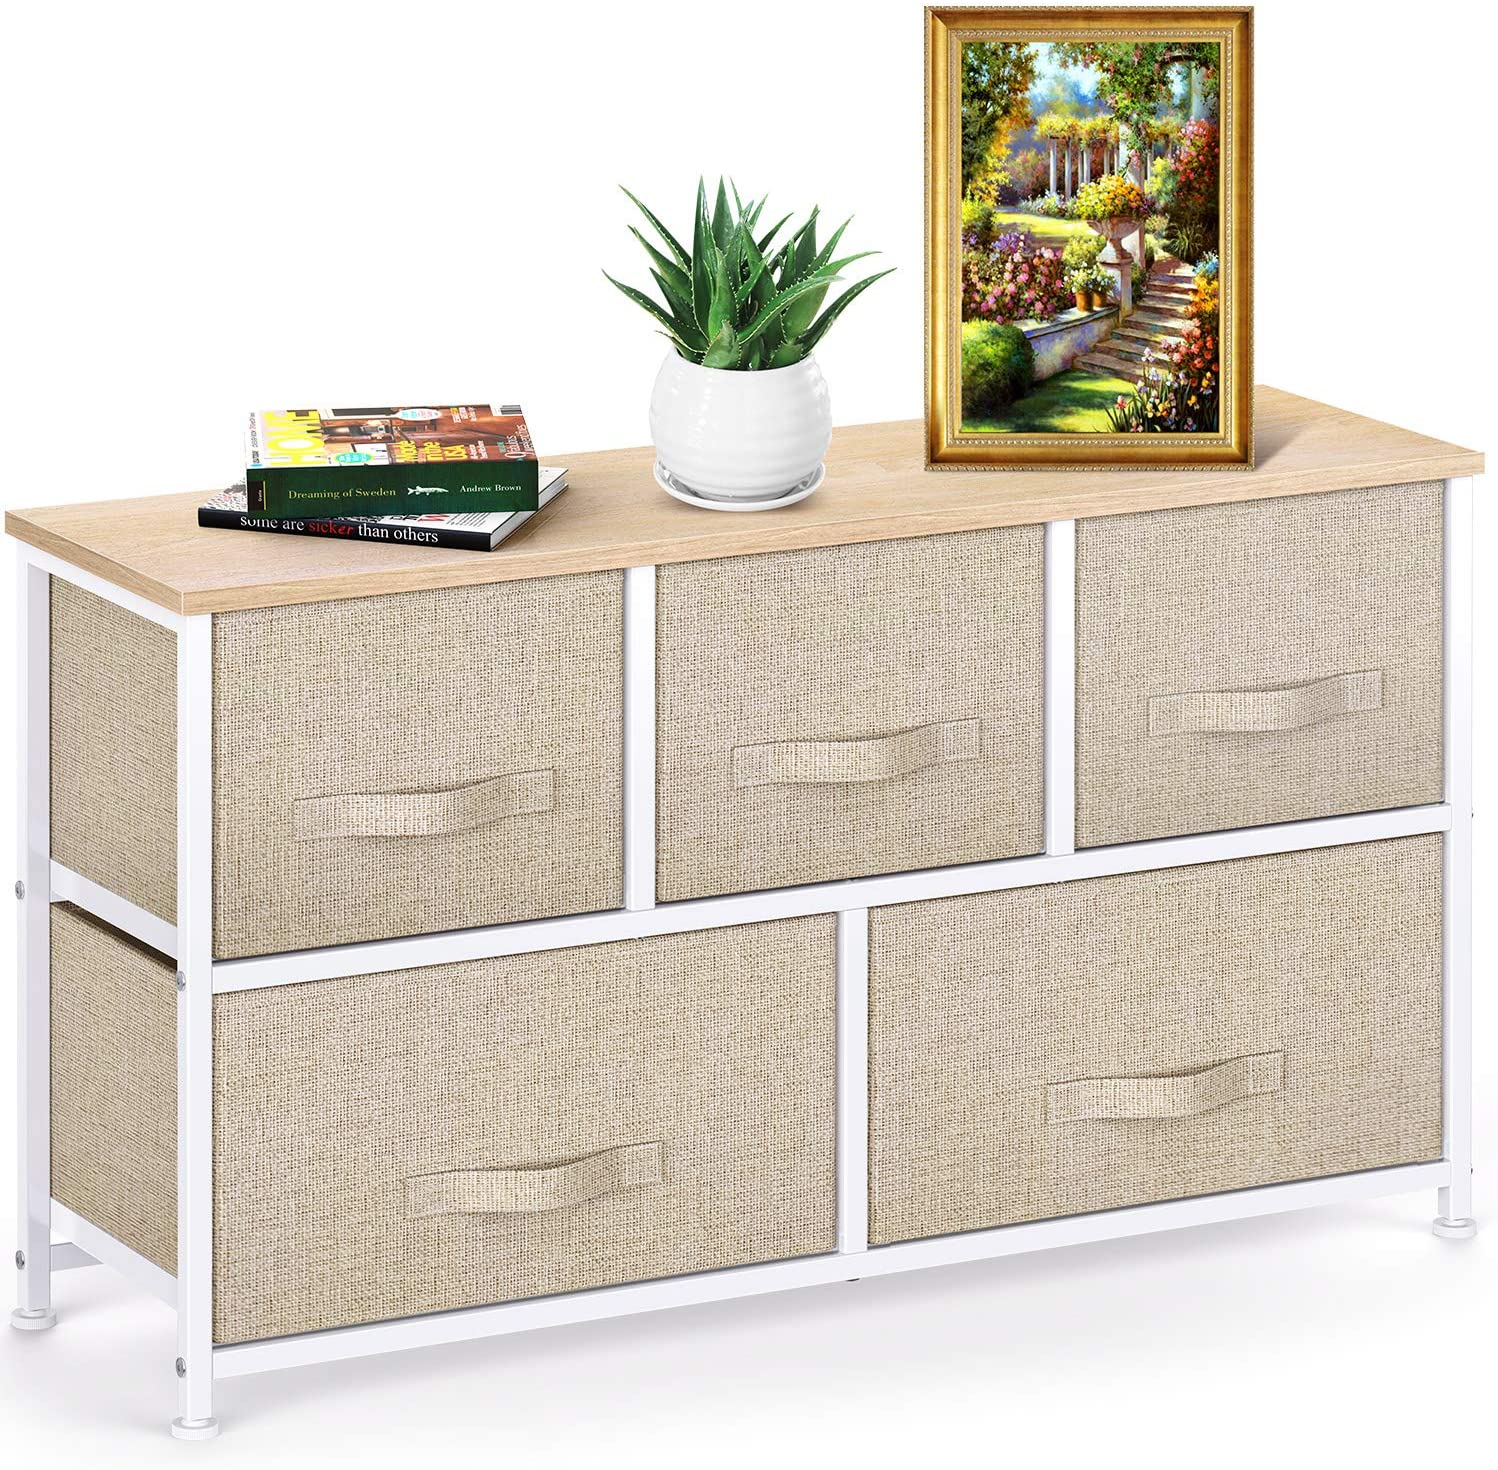 Fabric Dresser with 5 Drawers, Wide Dresser Storage Tower, Organizer Unit with Wood Top and Easy Pull Handle for Closets, Living Room, Nursery Room, Hallway by Pipishell: Home Improvement